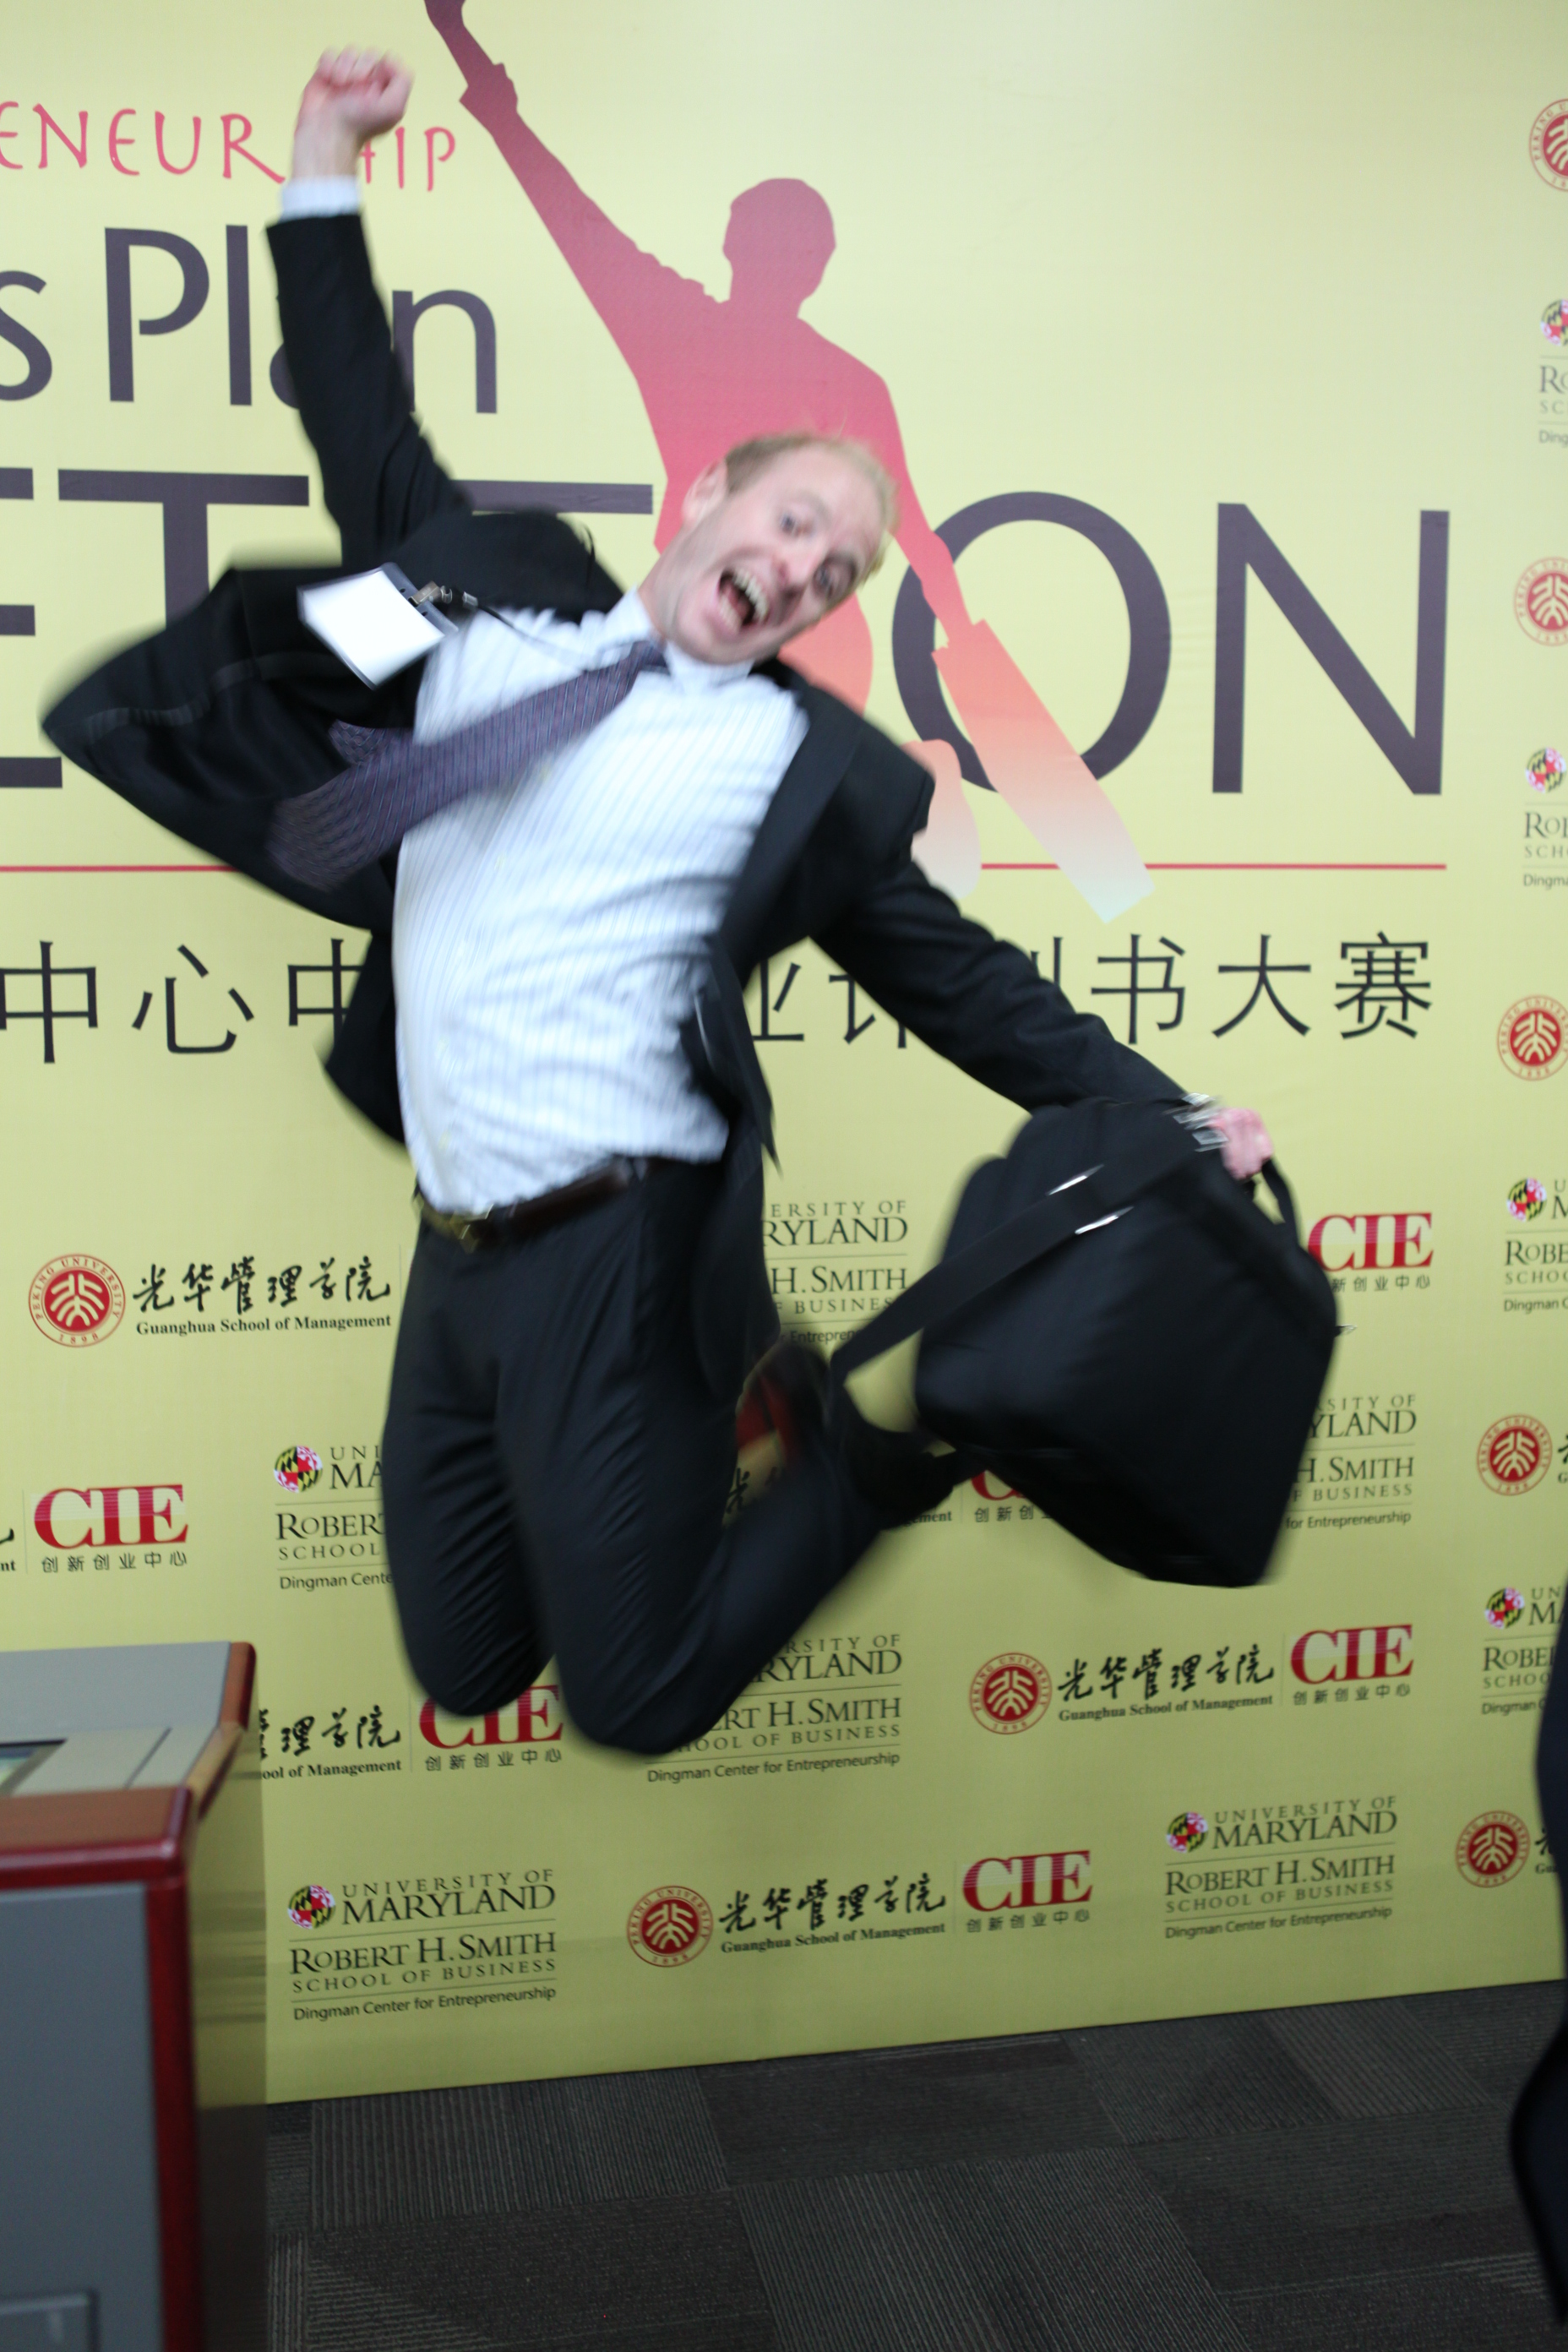 Smith MBA Wins 8th Annual China Business Plan Competition